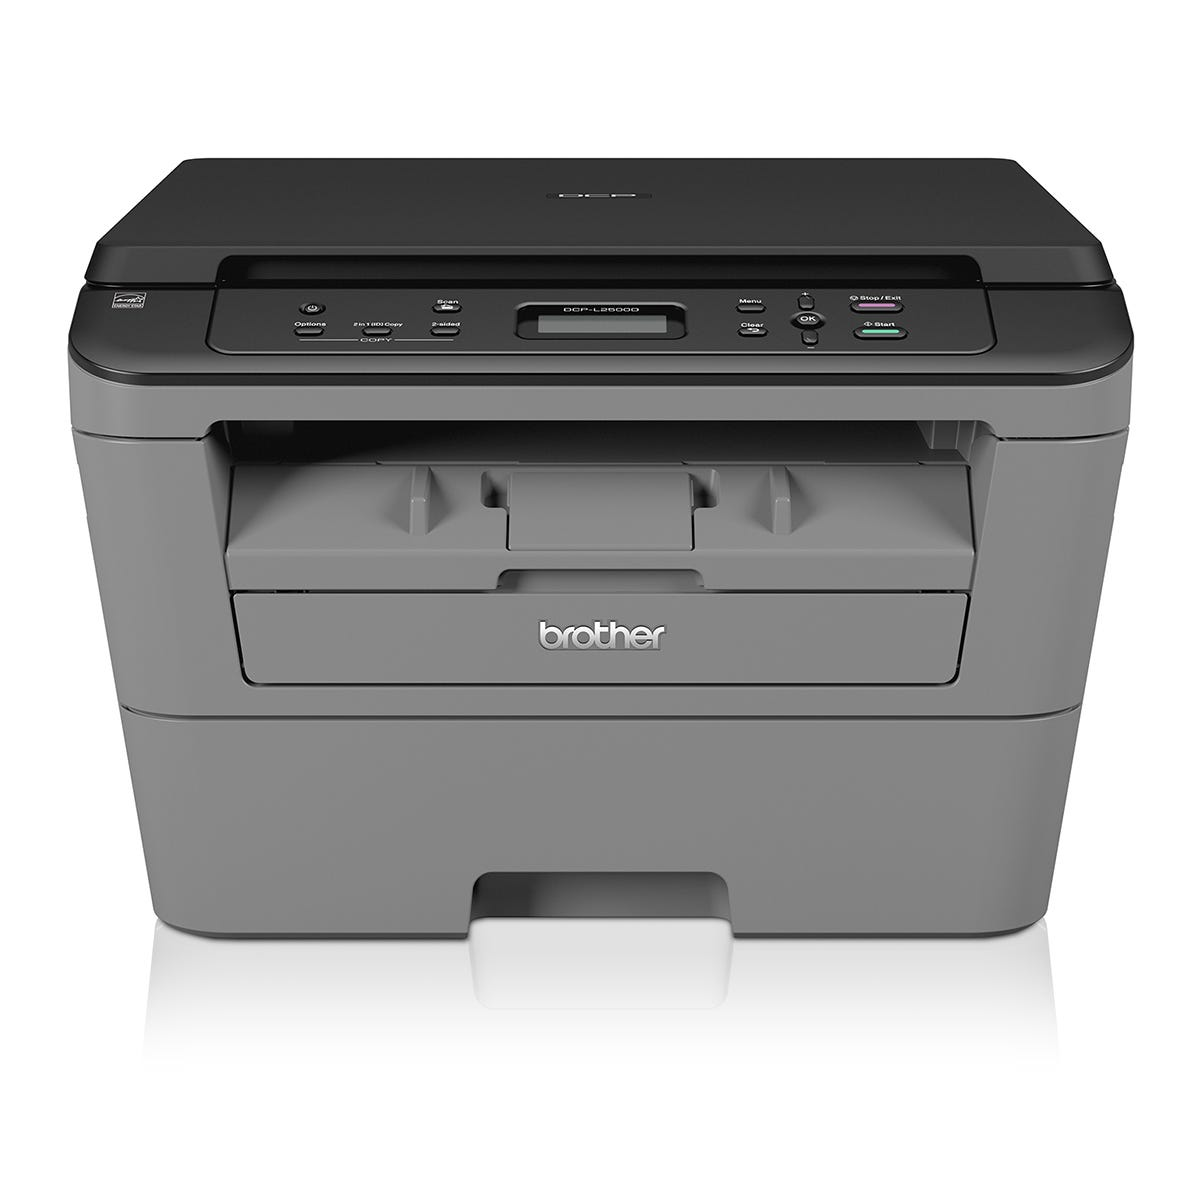 Brother DCPL2500D Compact Mono Laser All-in-One Printer